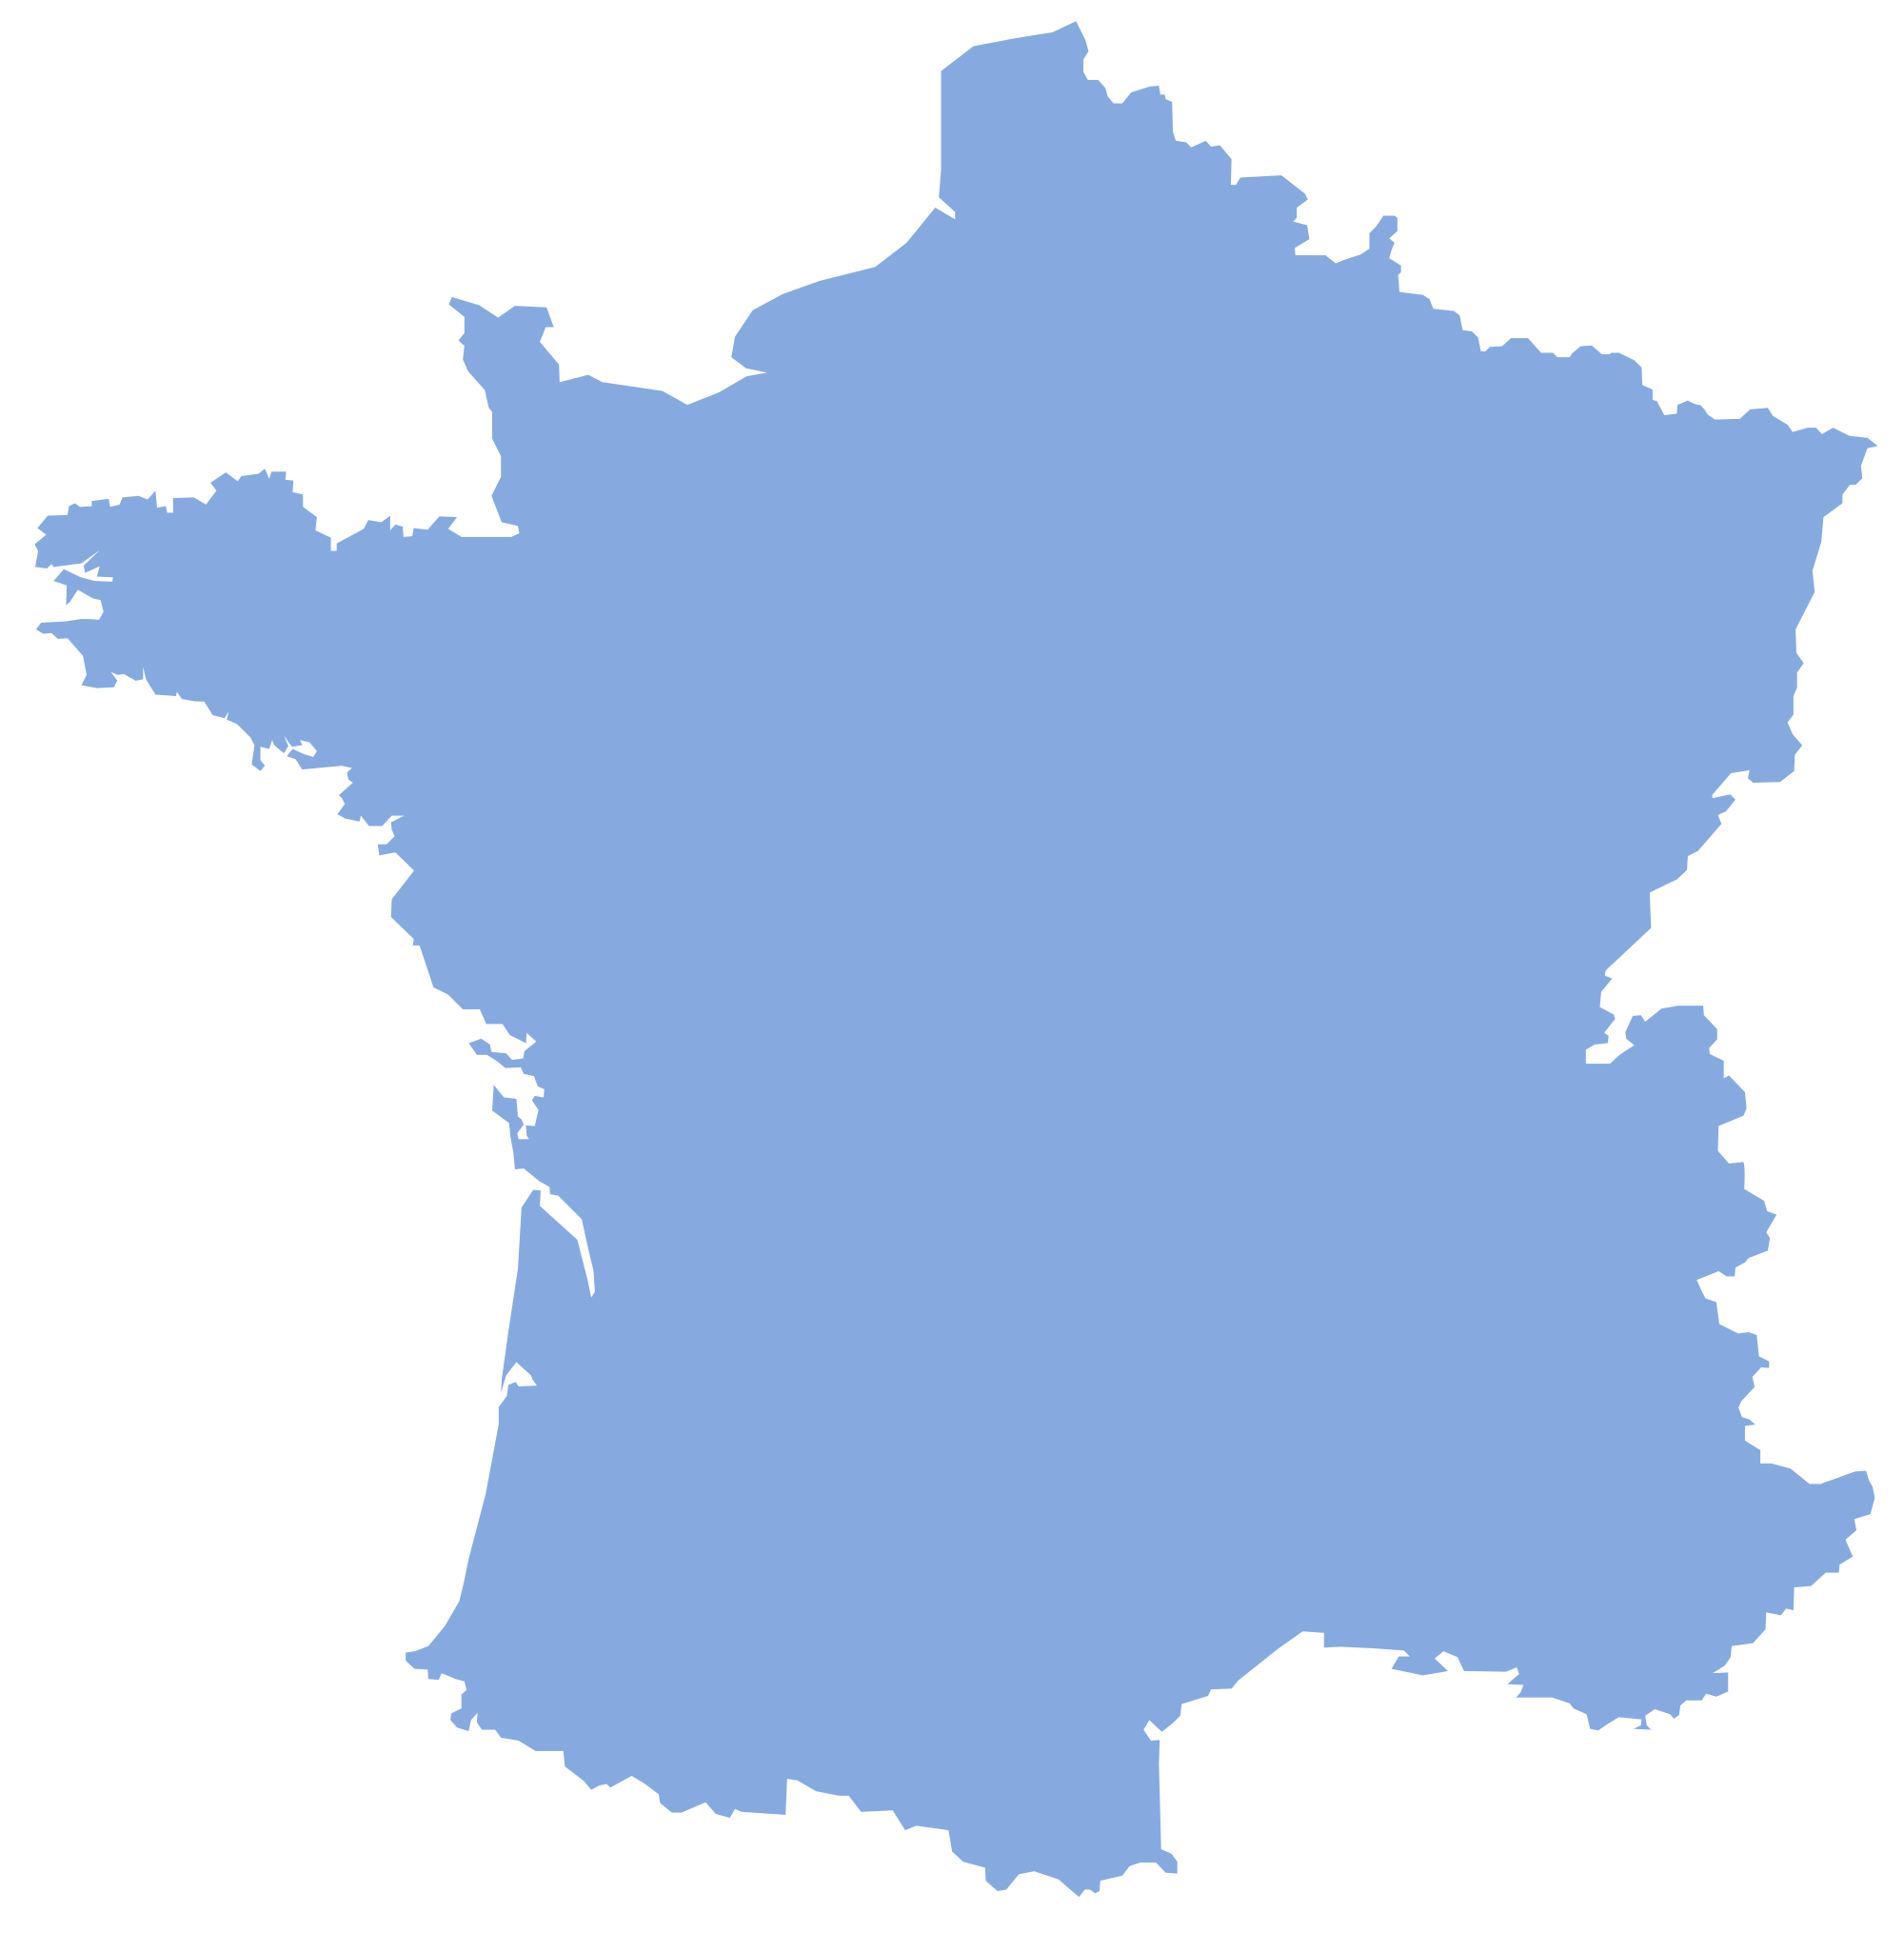 France Map Png.Blank France Map Mapsof Net